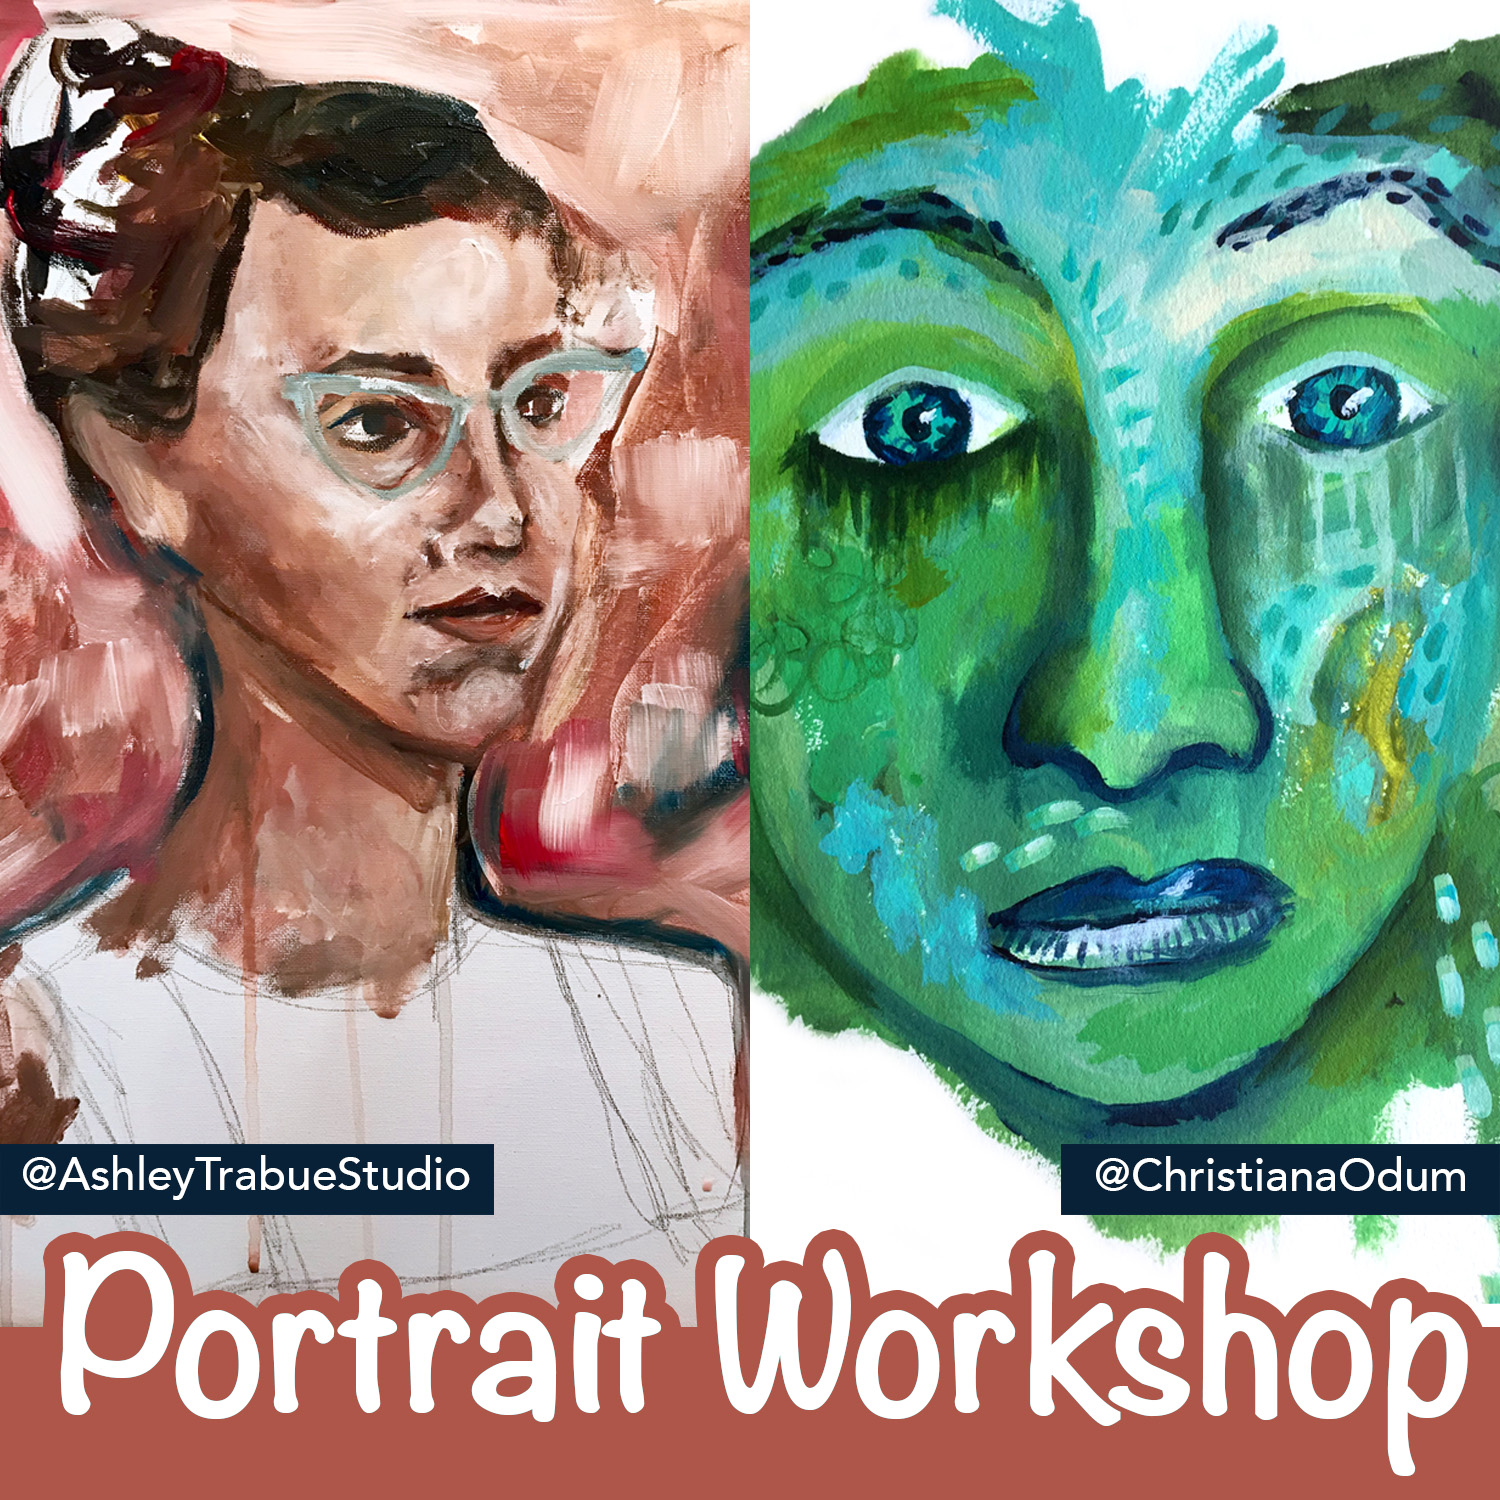 Portrait Workshop - Join us Saturday July 27 from 9 am—noon in Ashley Trabue's home studio for an intimate hands-on class in portraiture from two distinct local artists!For the first hour we'll learn the tips and tricks of drawing representational portraits, take a crash-course in color theory, and explore painting in an abstract and intuitive style.Over the next two hours, you will have access to an open-studio stocked with materials and enjoy Ashley and Christiana's personalized instruction, guidance, and encouragement while you paint a portrait of your own.Because we want to keep the group small and intimate, space is very limited!Click here to claim your spot!